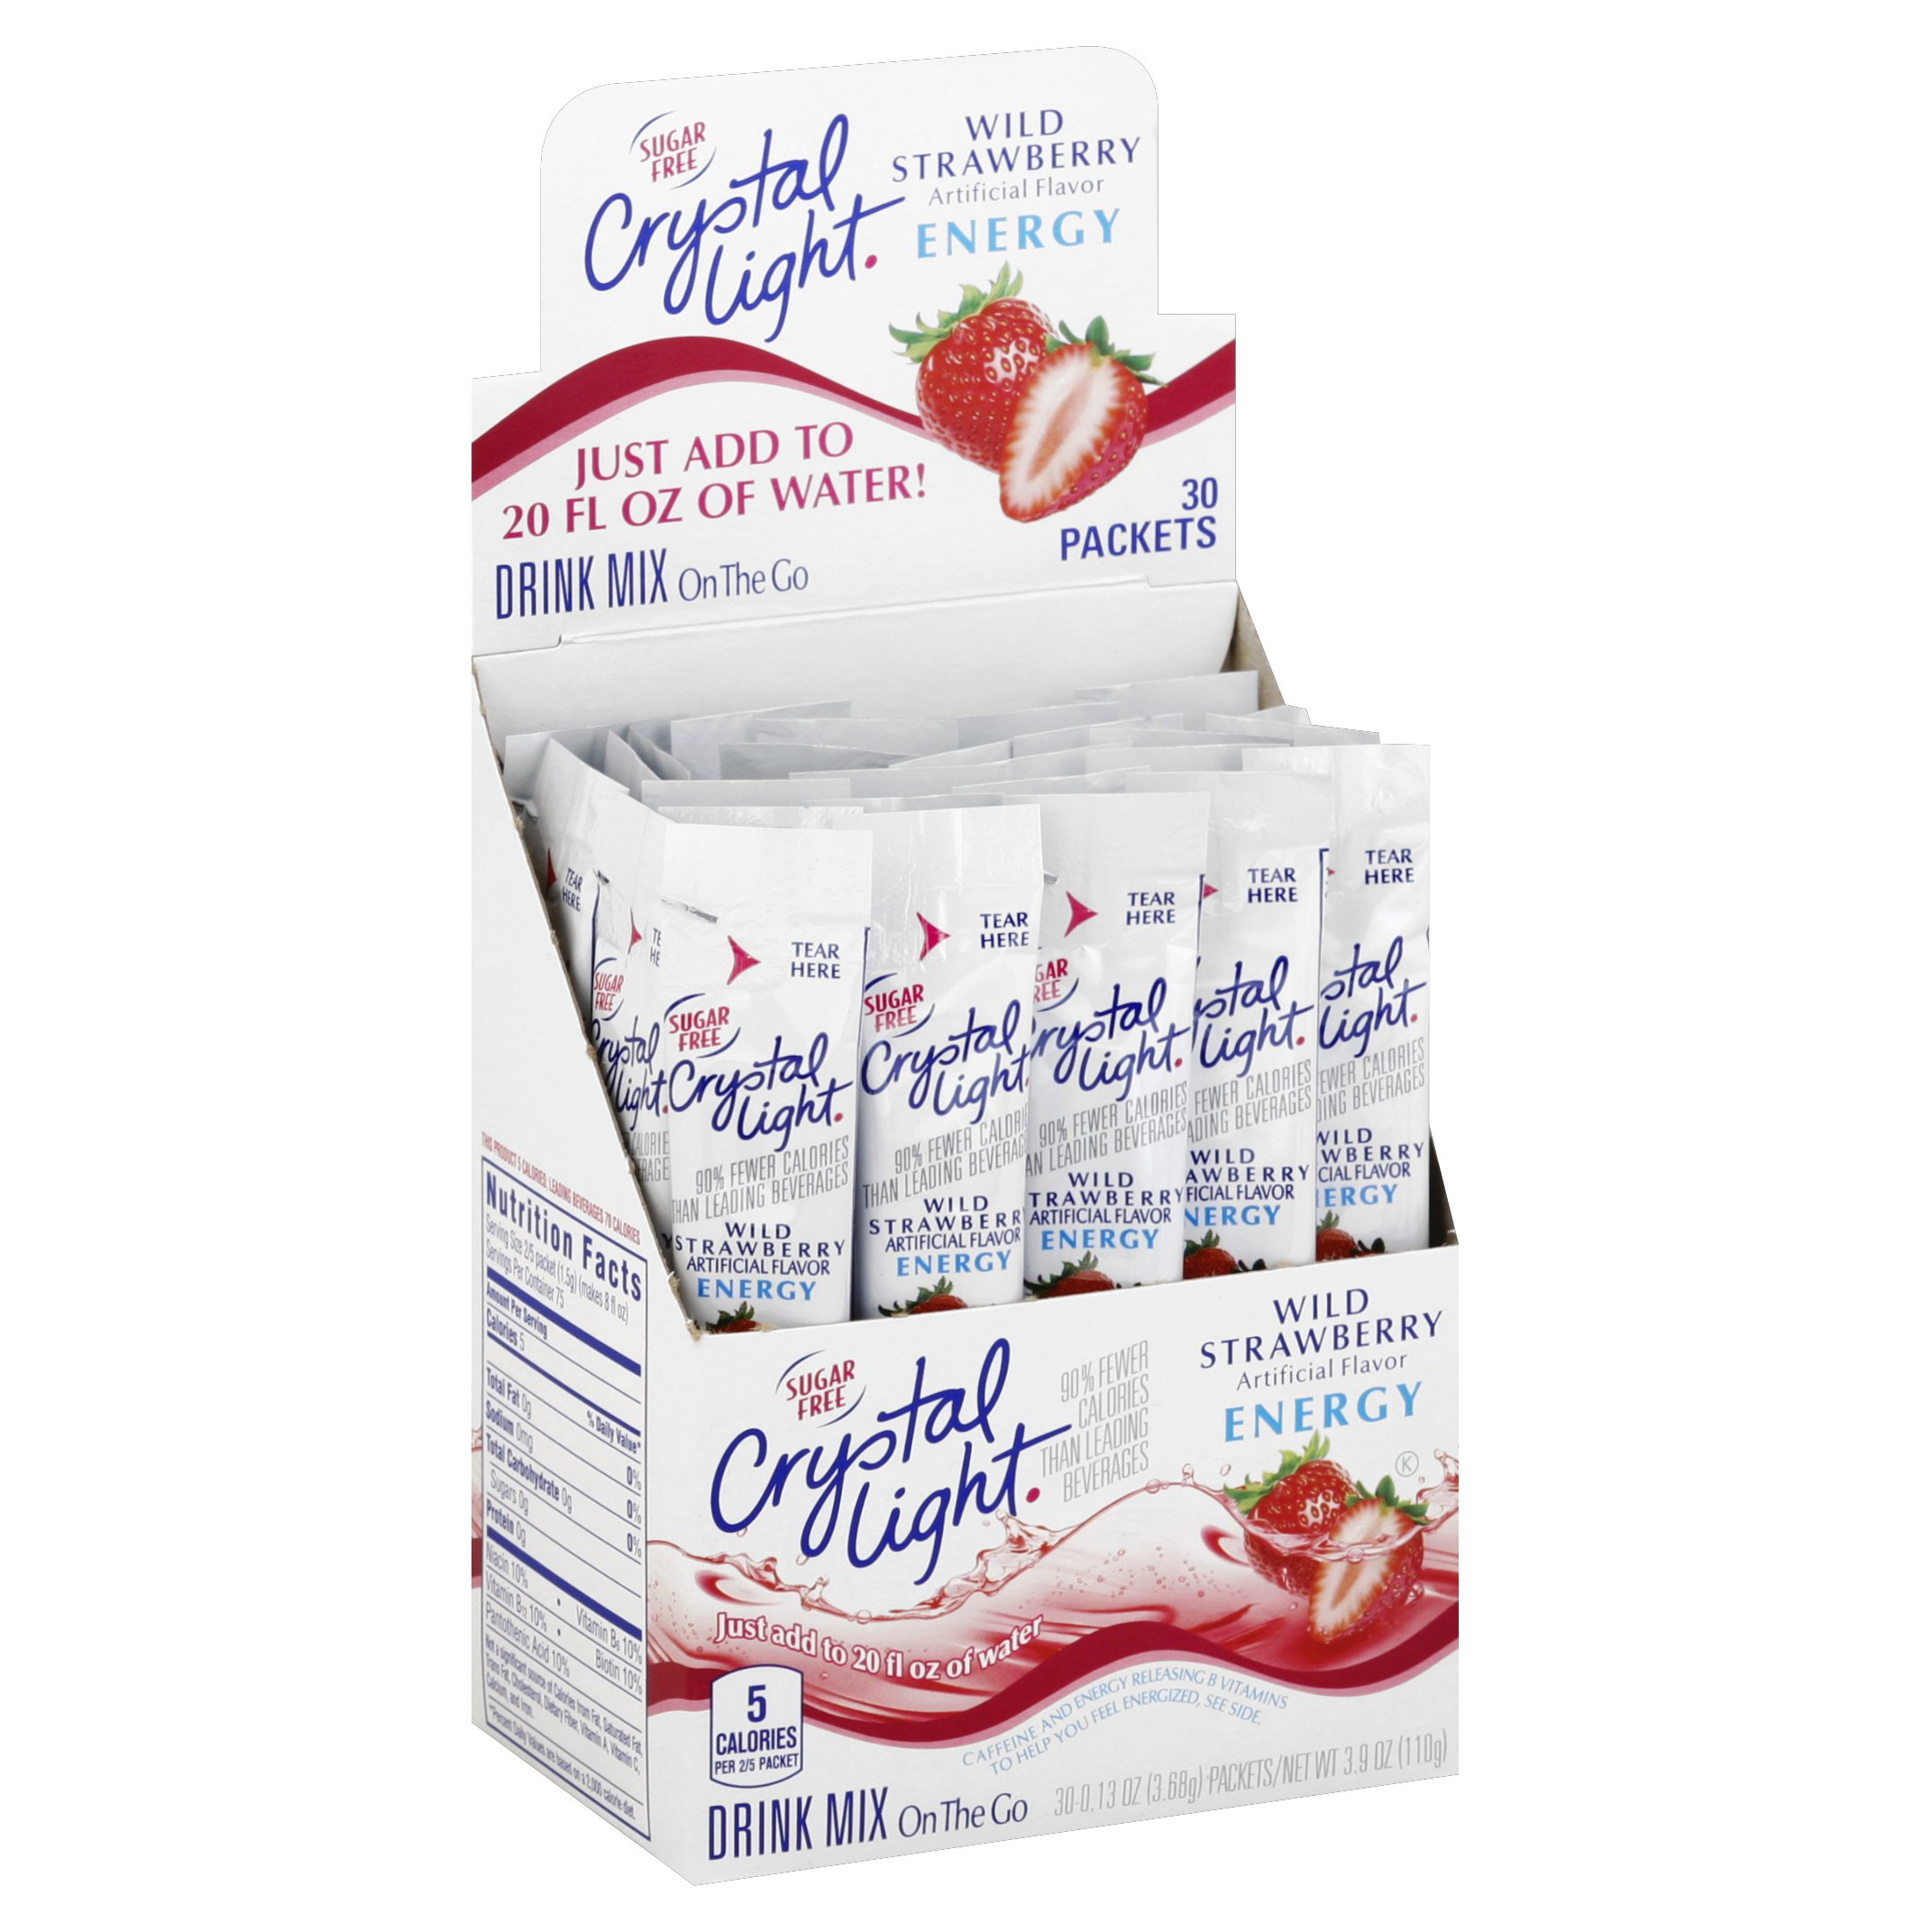 Crystal Light Wild Strawberry Energy Mix (30 Packets)